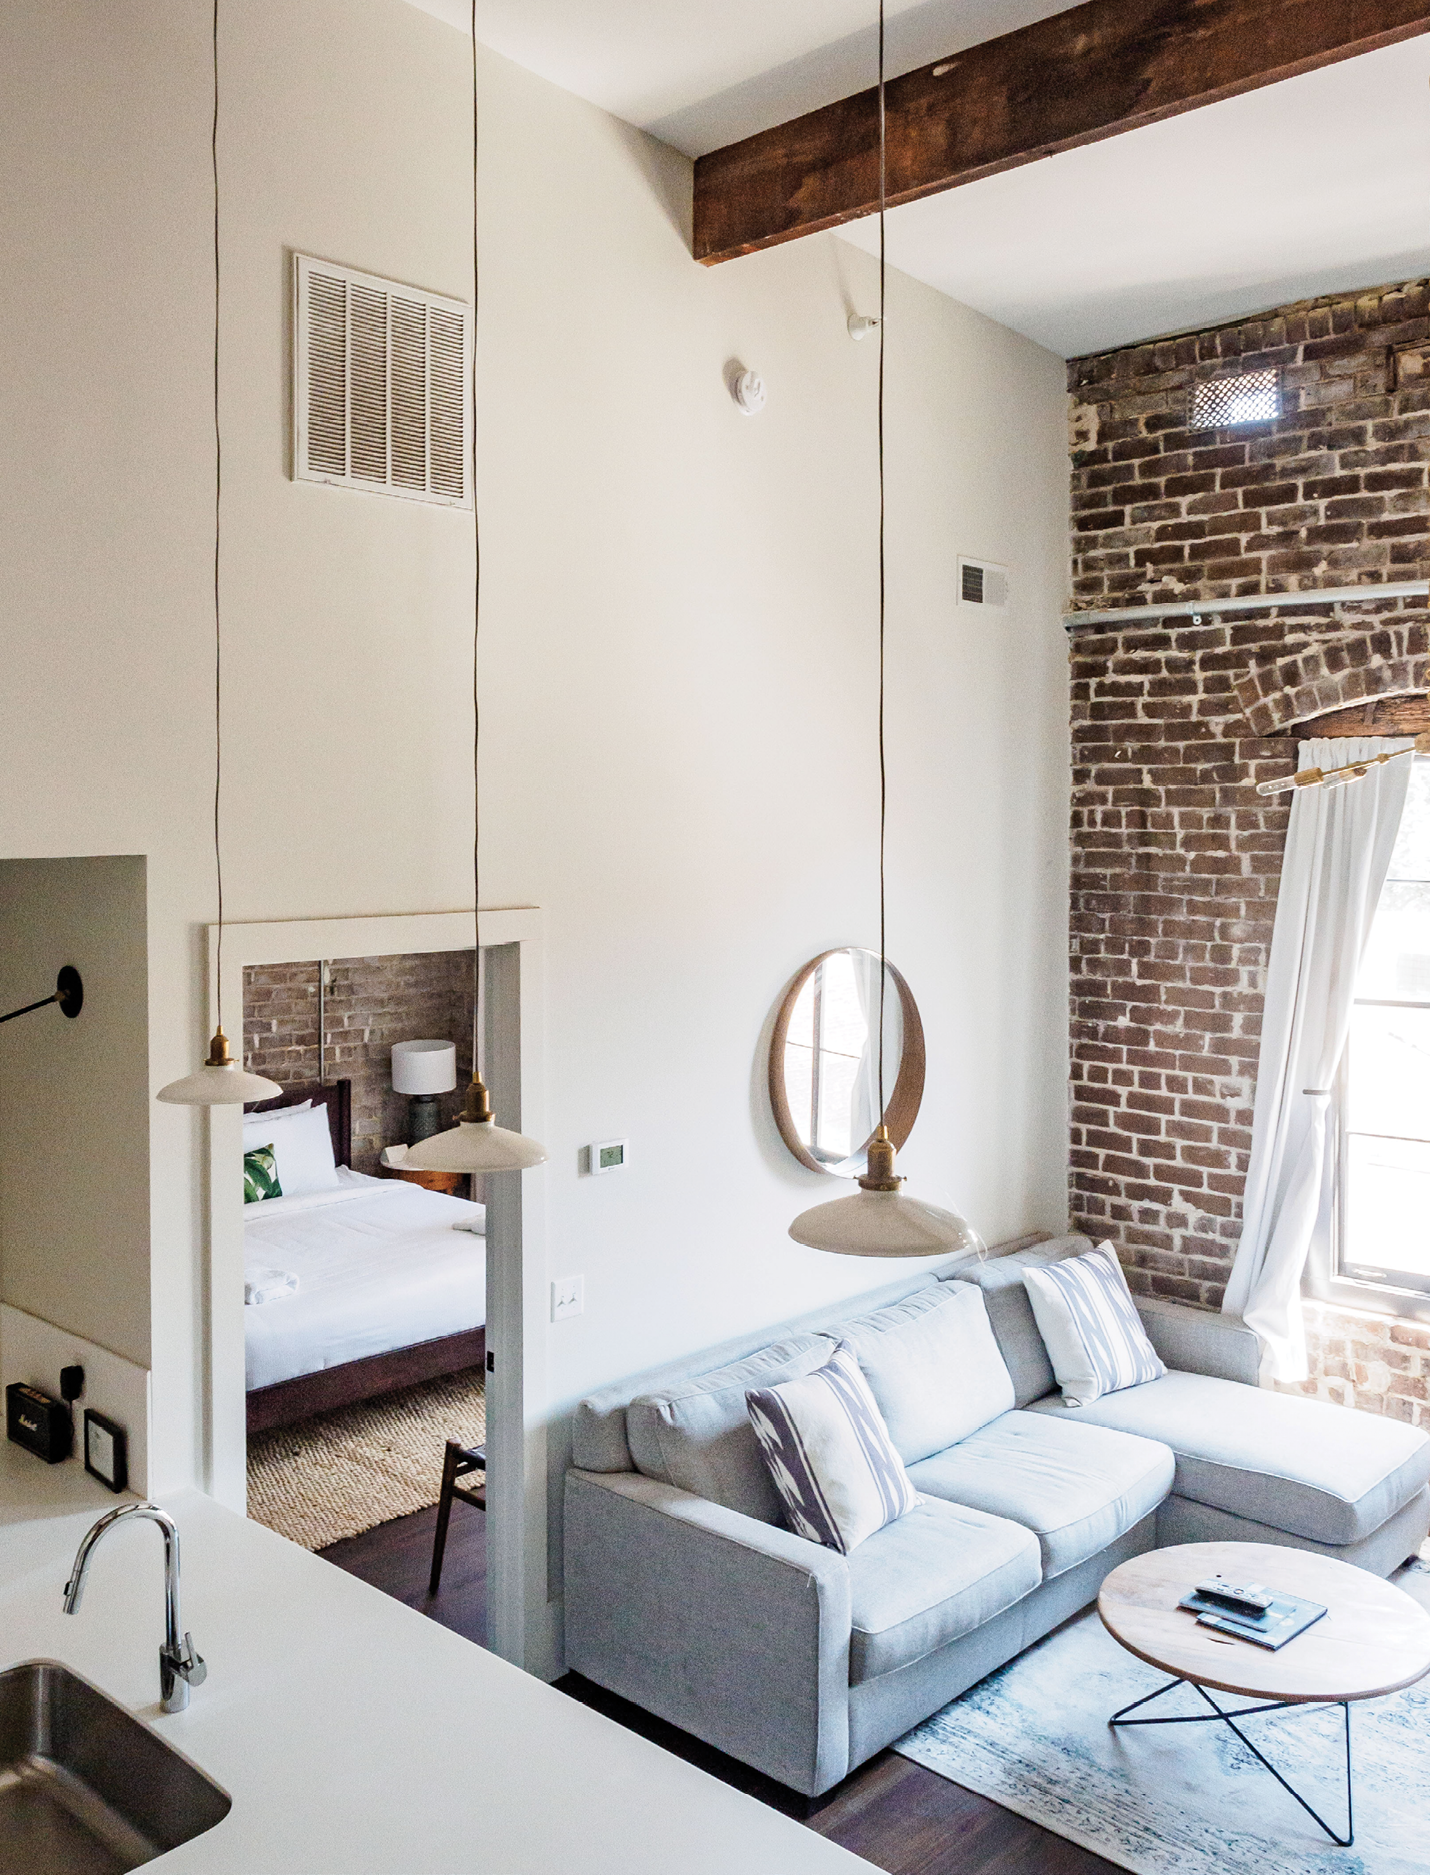 Lofty apartments for overnight and longer stays at The Grant, a former garment factory that opened last year on Broughton Street.